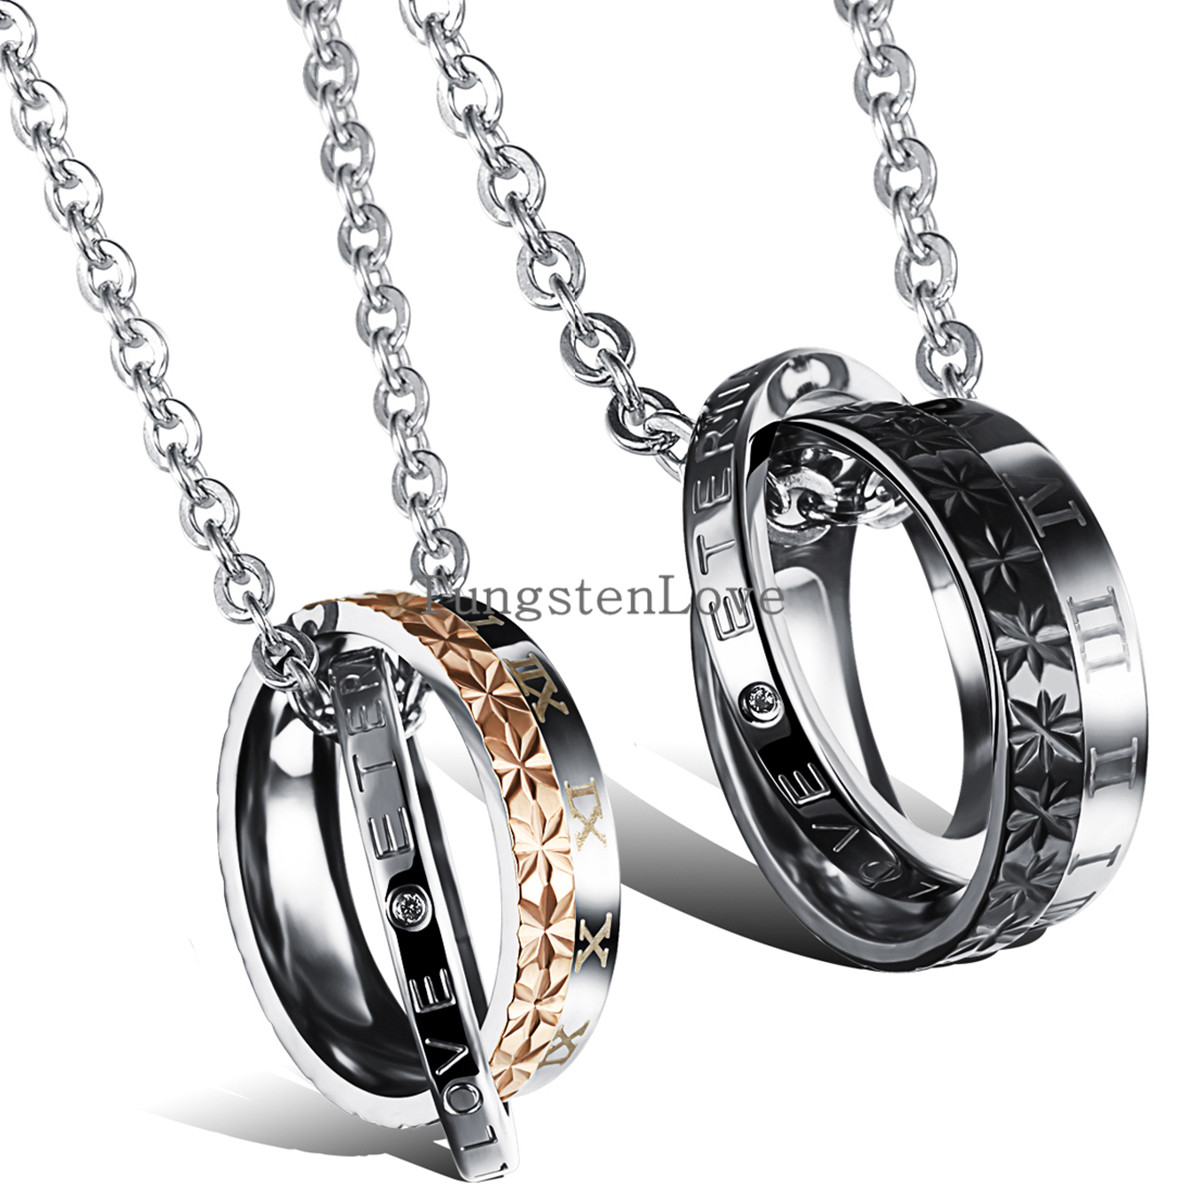 Compare Prices on Couple Jewelry- Online Shopping/Buy Low Price ...